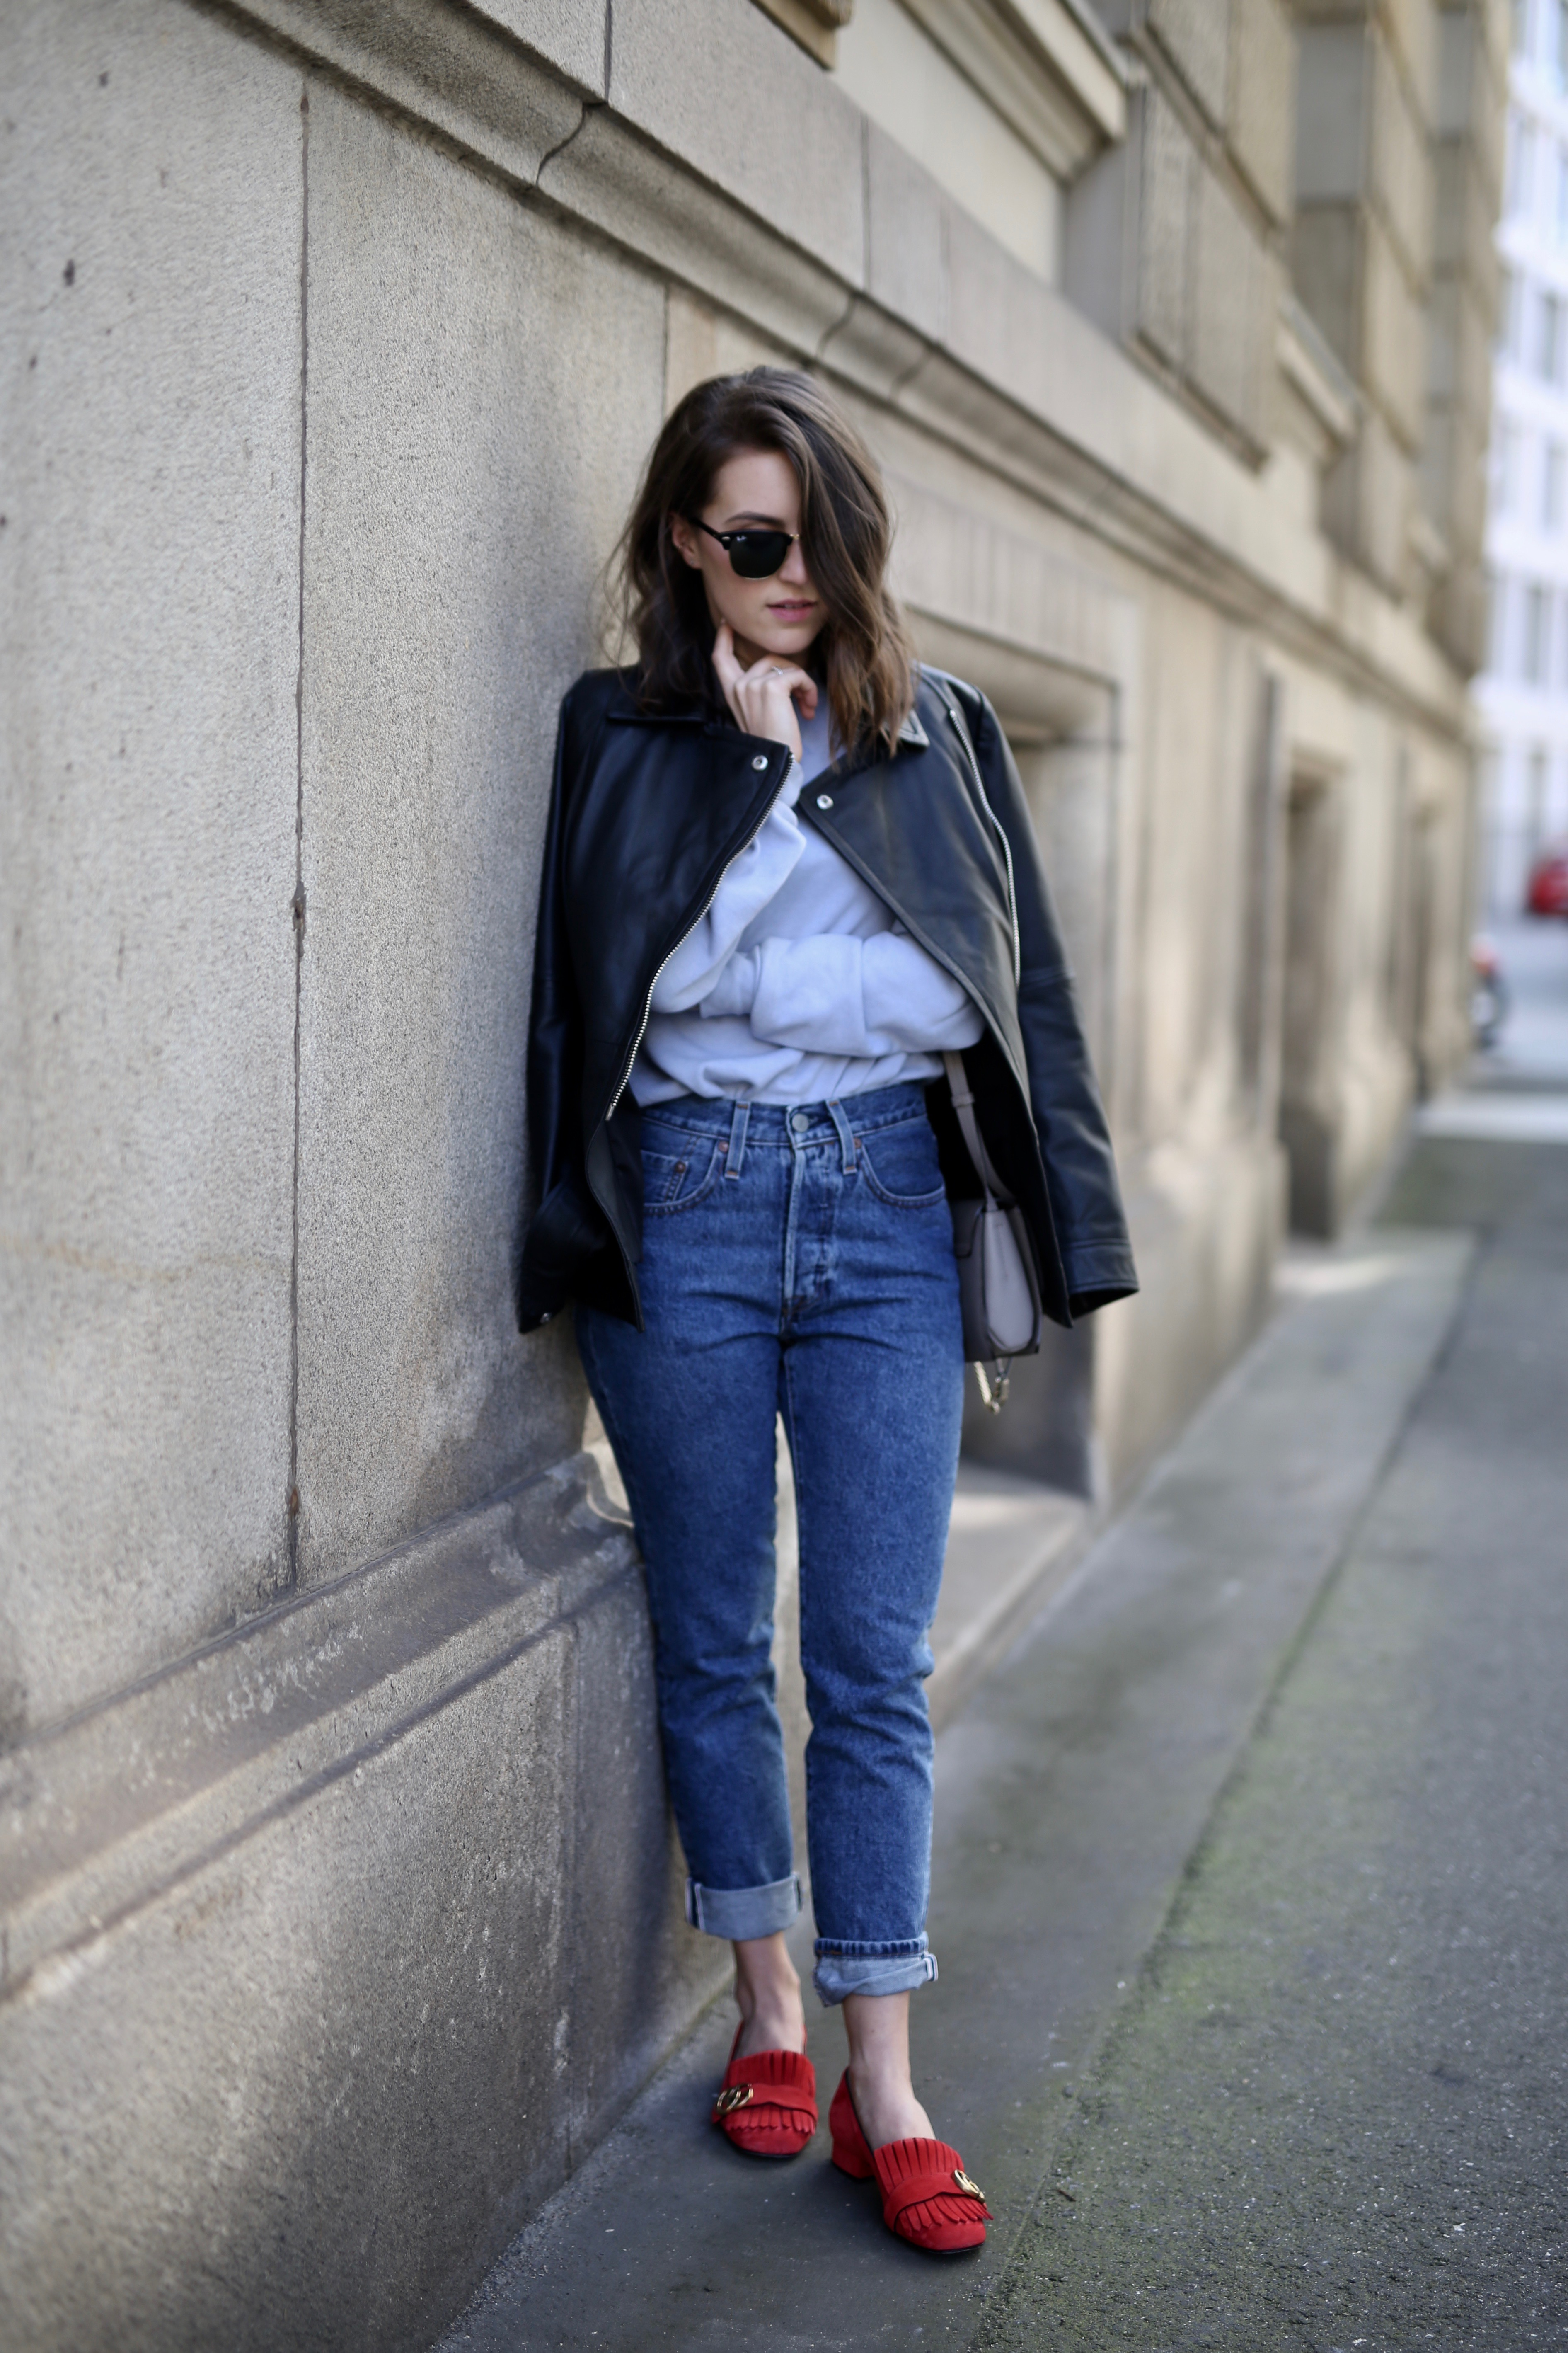 c8117bc45caf42 street style denim jeans Lederjacke - Shoppisticated